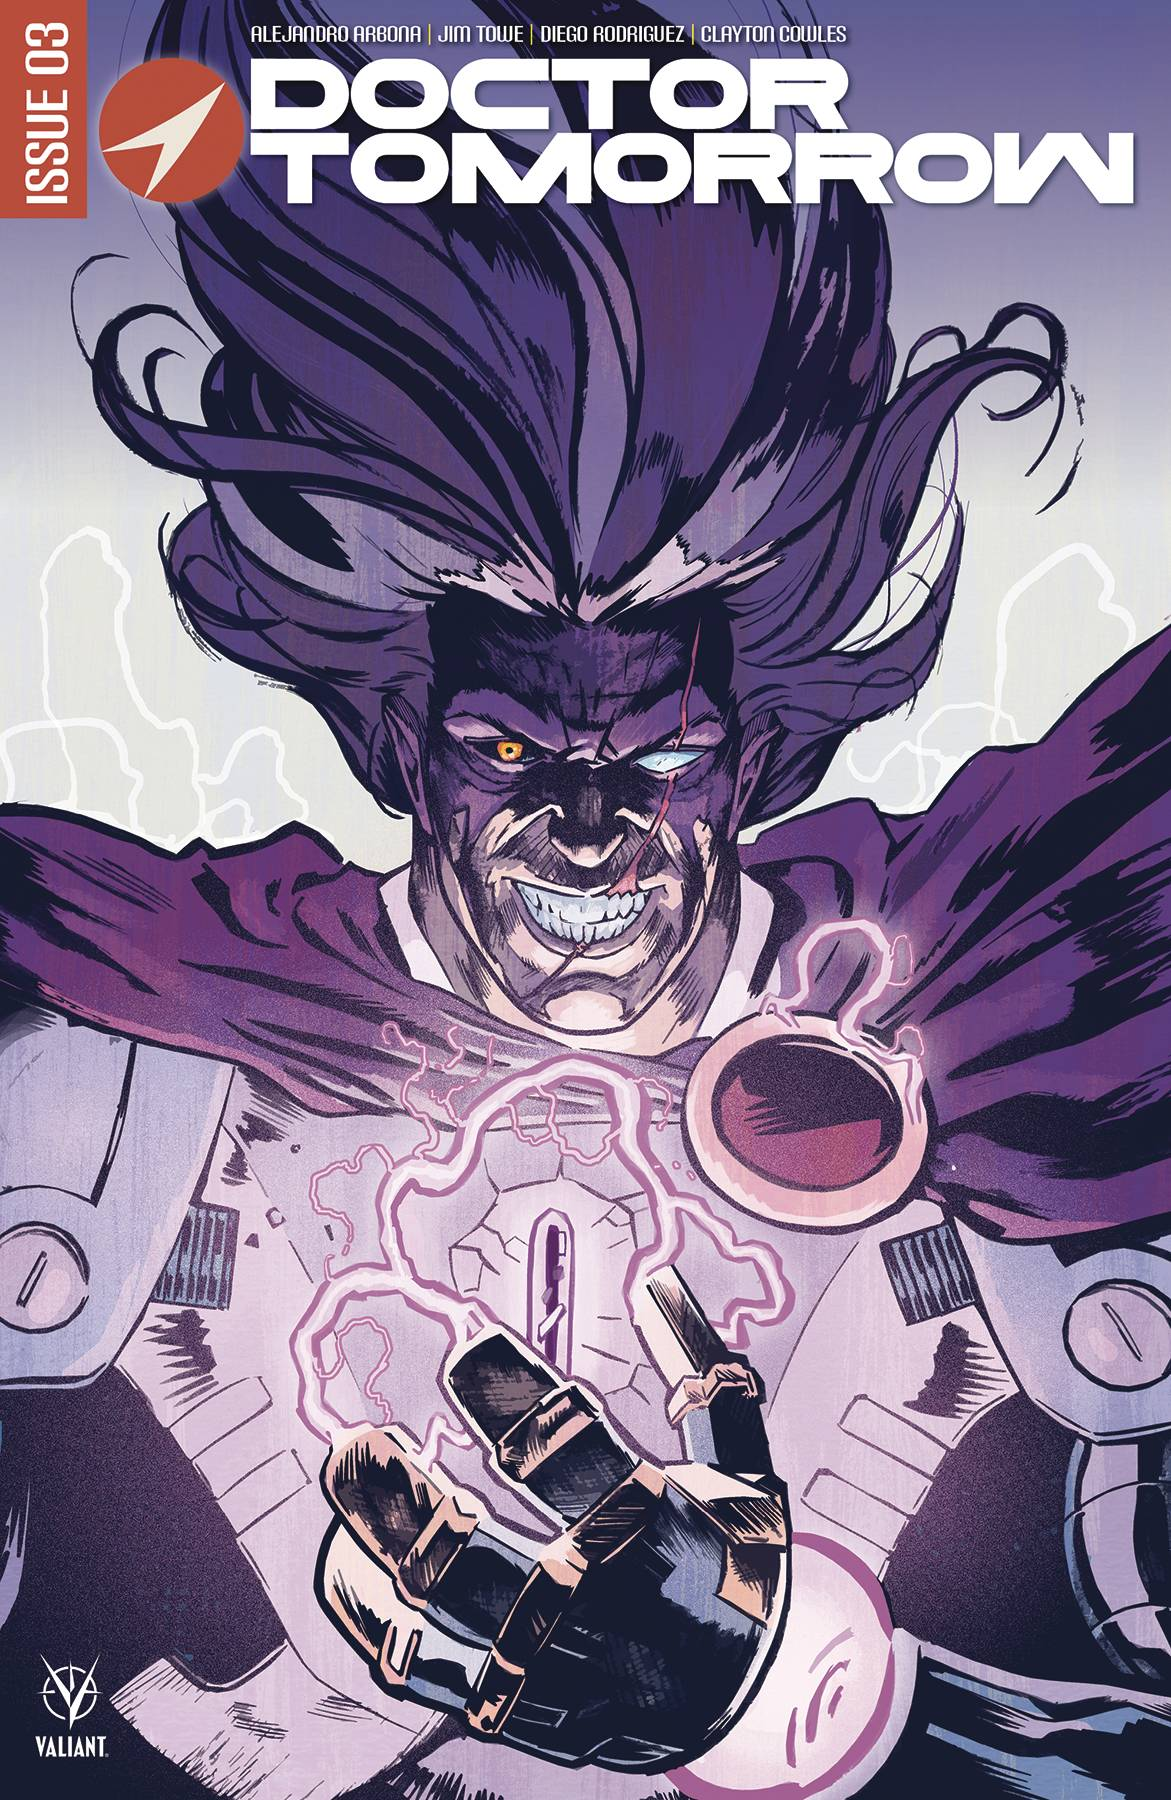 Doctor Tomorrow #3 (2020)